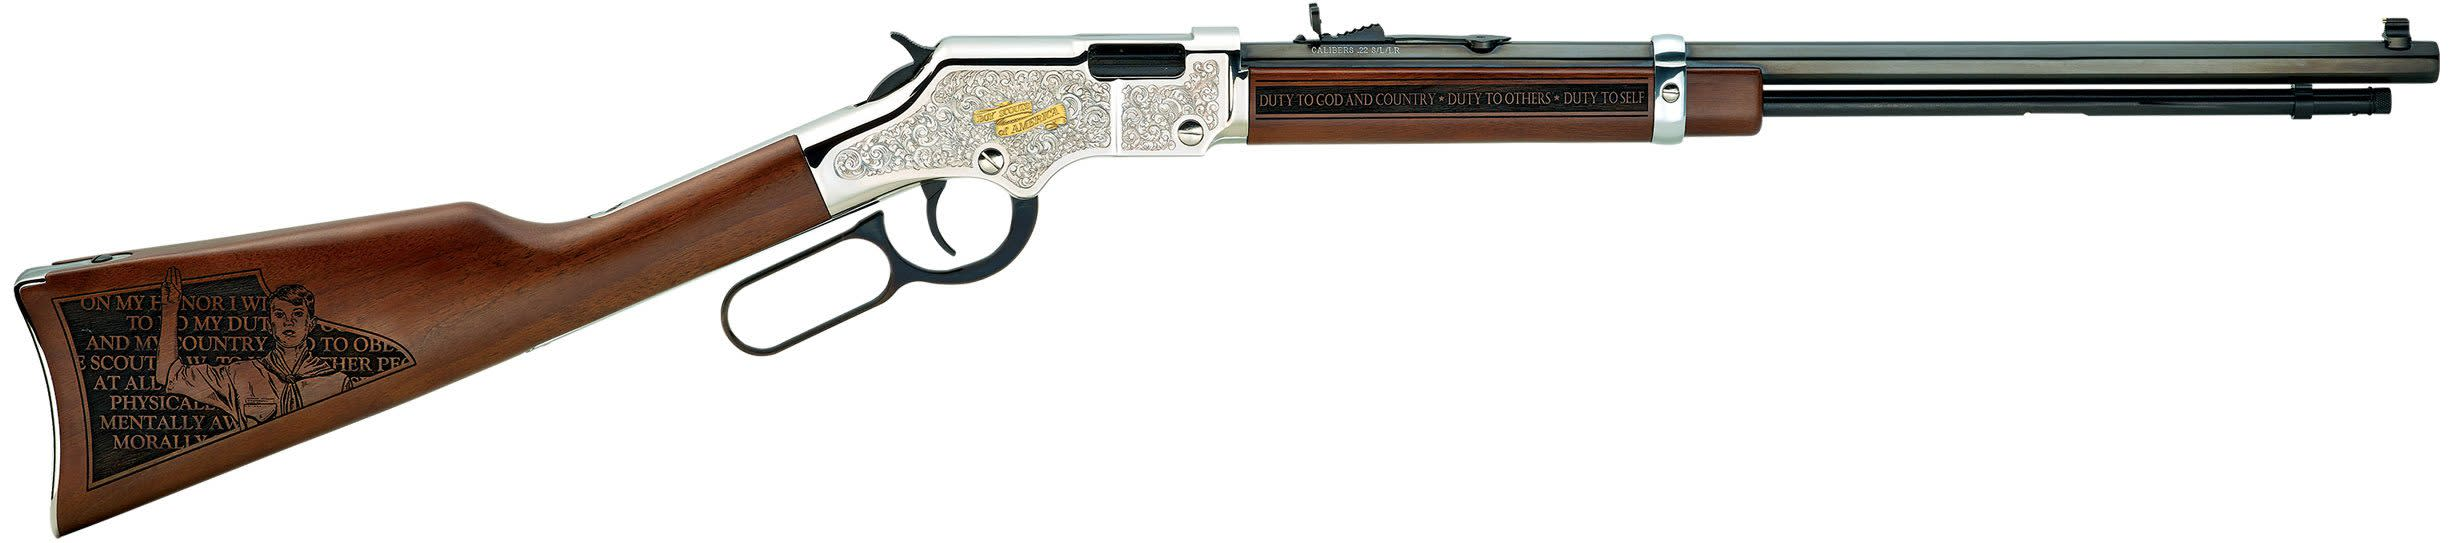 Henry Golden Boy Salute to Scouting Tribute Edition 22 LR 20